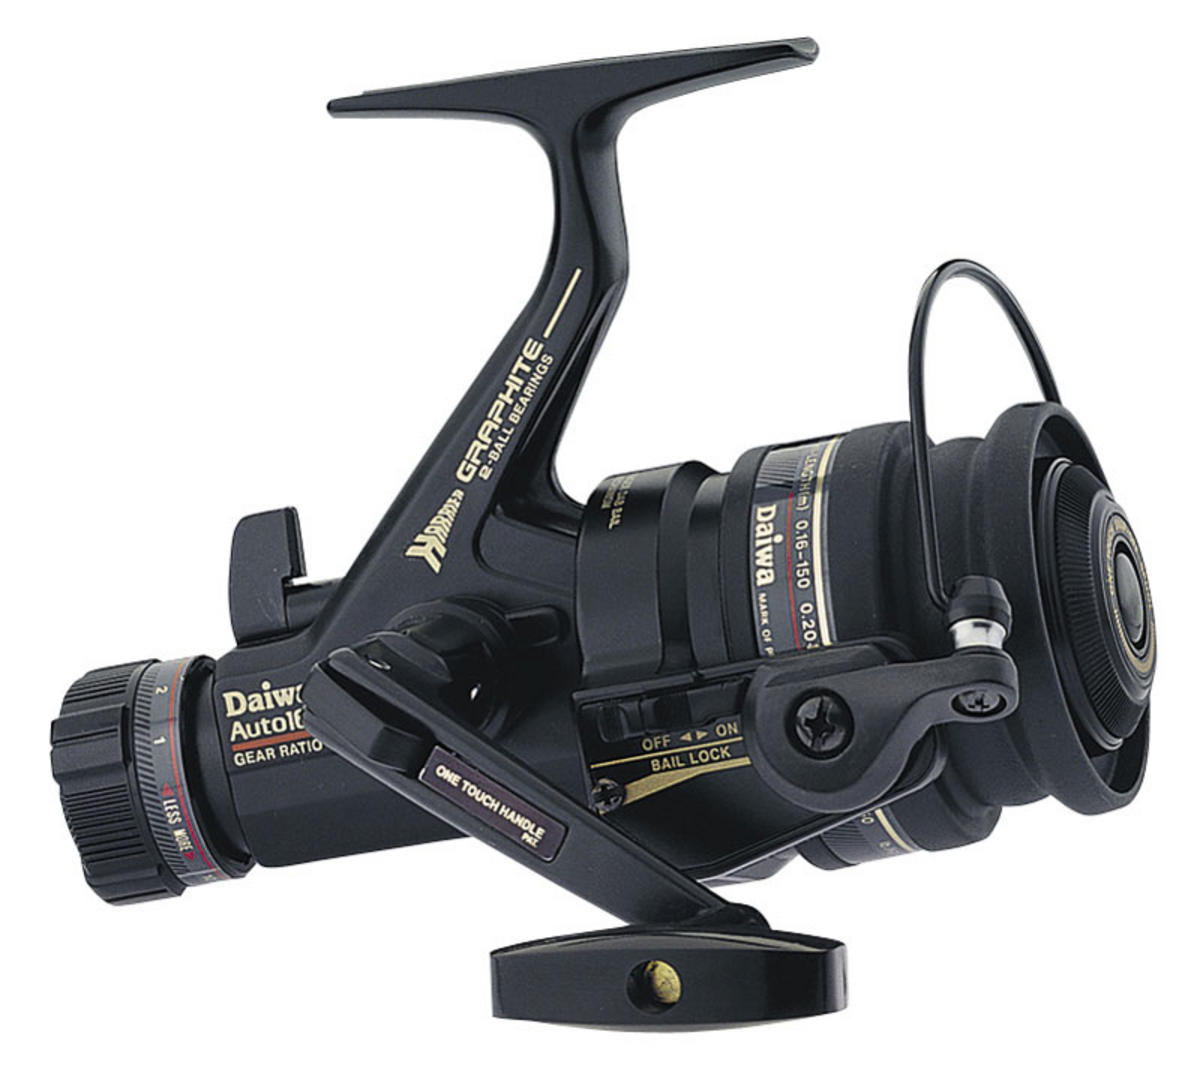 DAIWA HARRIER AUTO MATCH DELUXE Model No 1657DM MATCH REEL